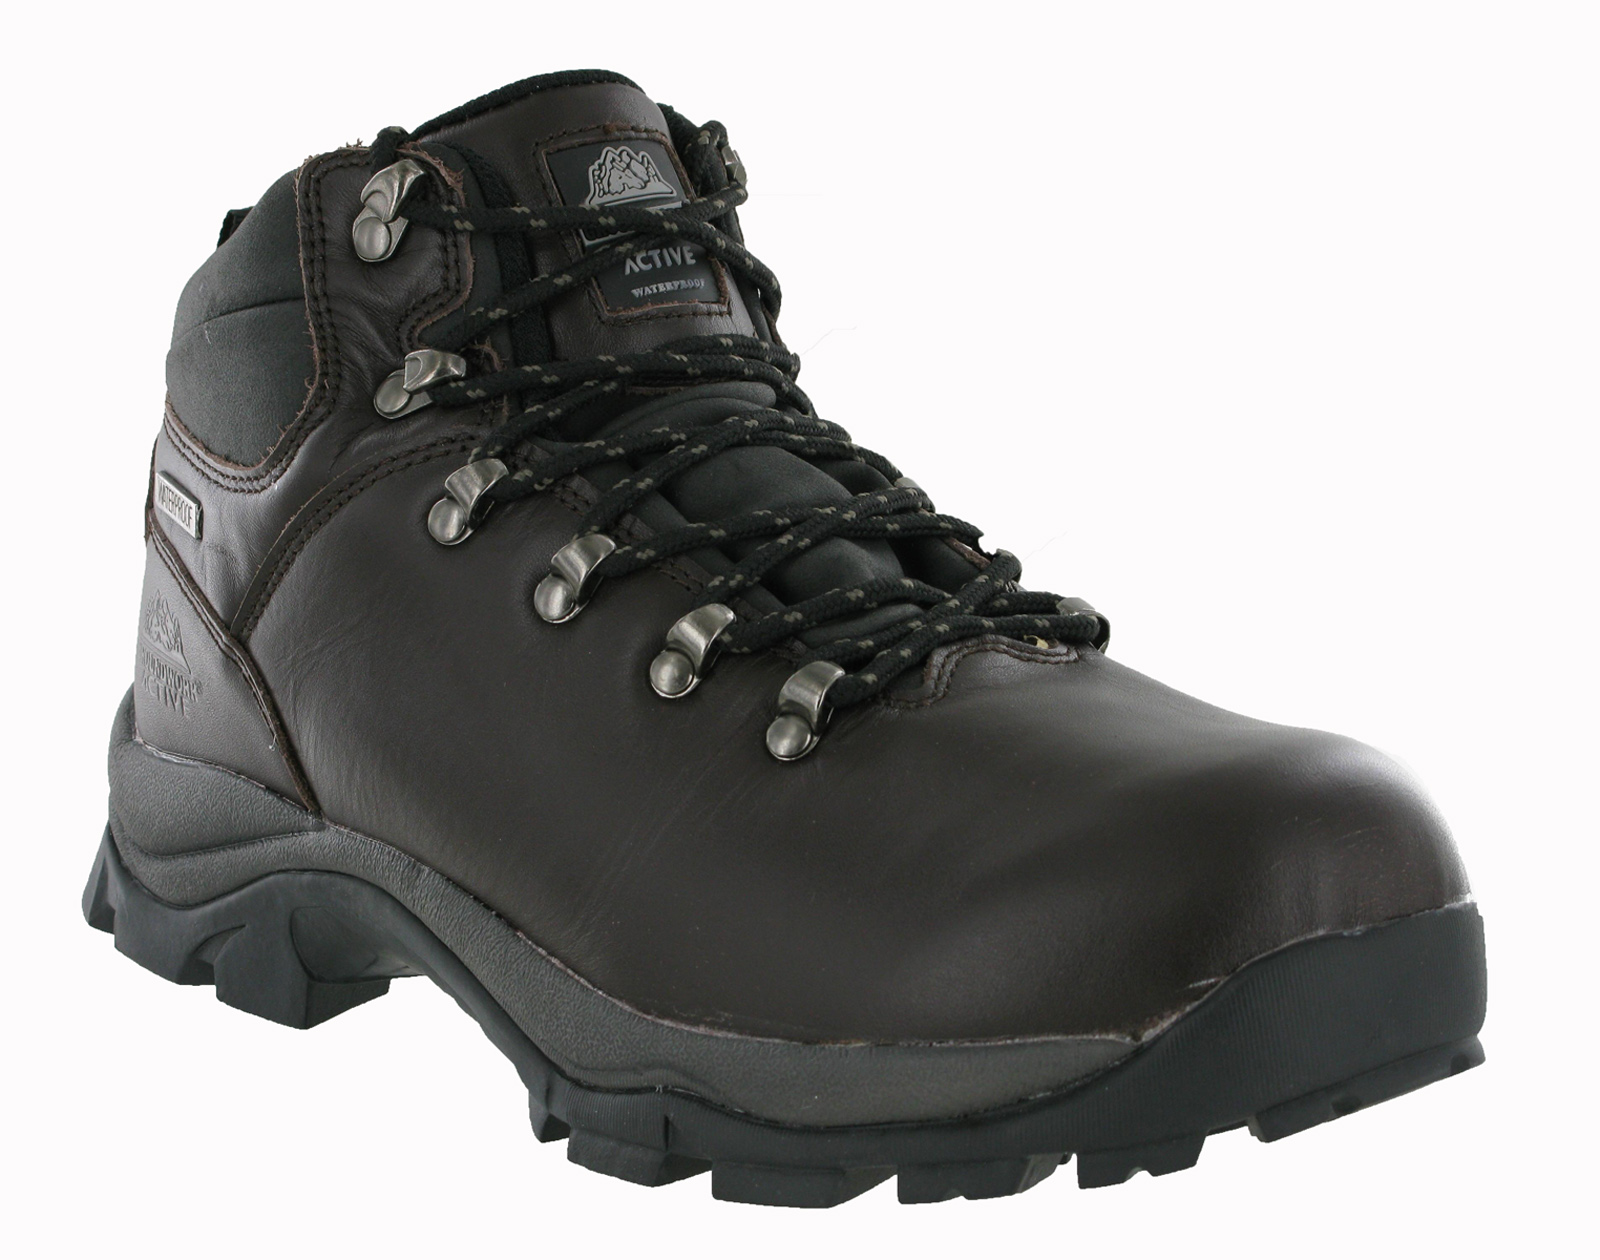 new mens waterproof grain leather trail walking